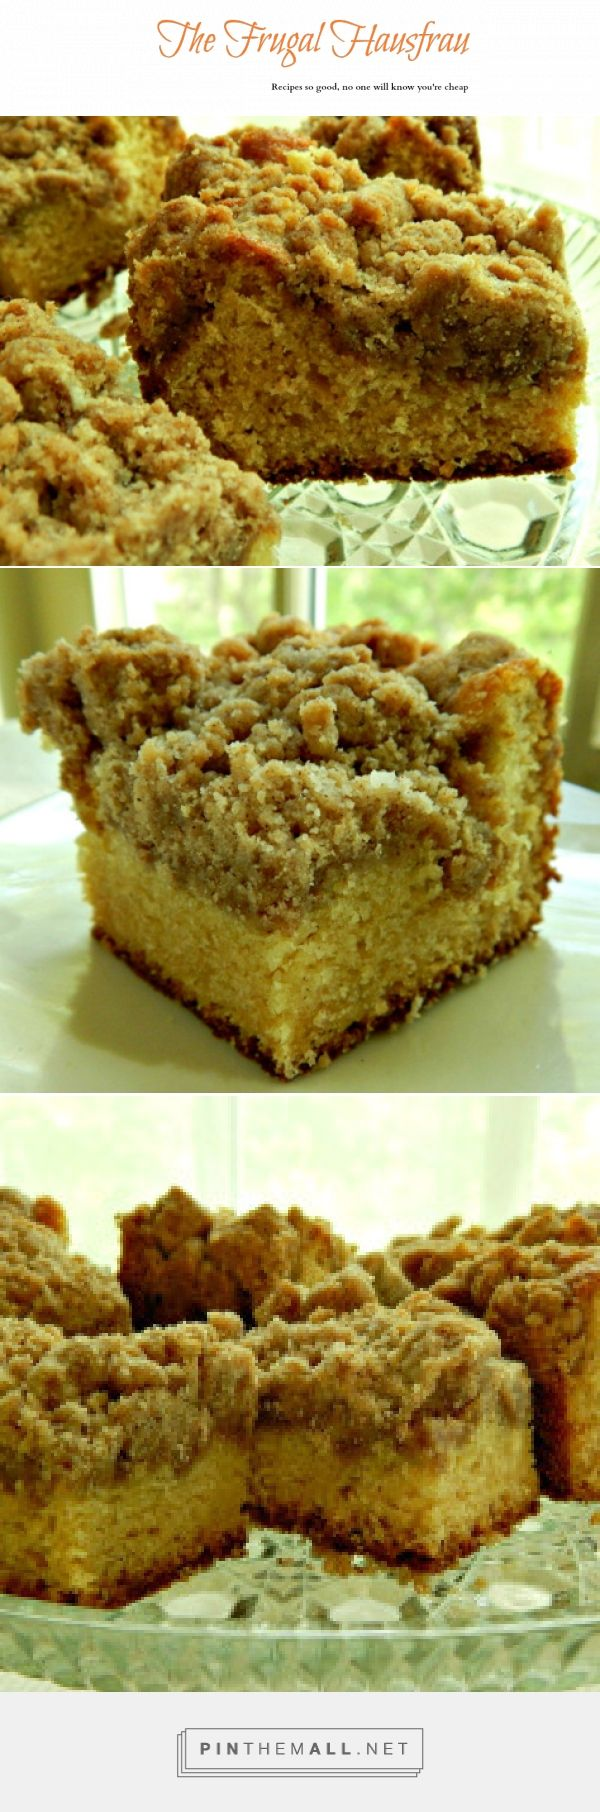 Classic Coffee Cake with Crumb Topping - The BEST coffee cake i EVER made! Seriously! Just look at those pictures!!